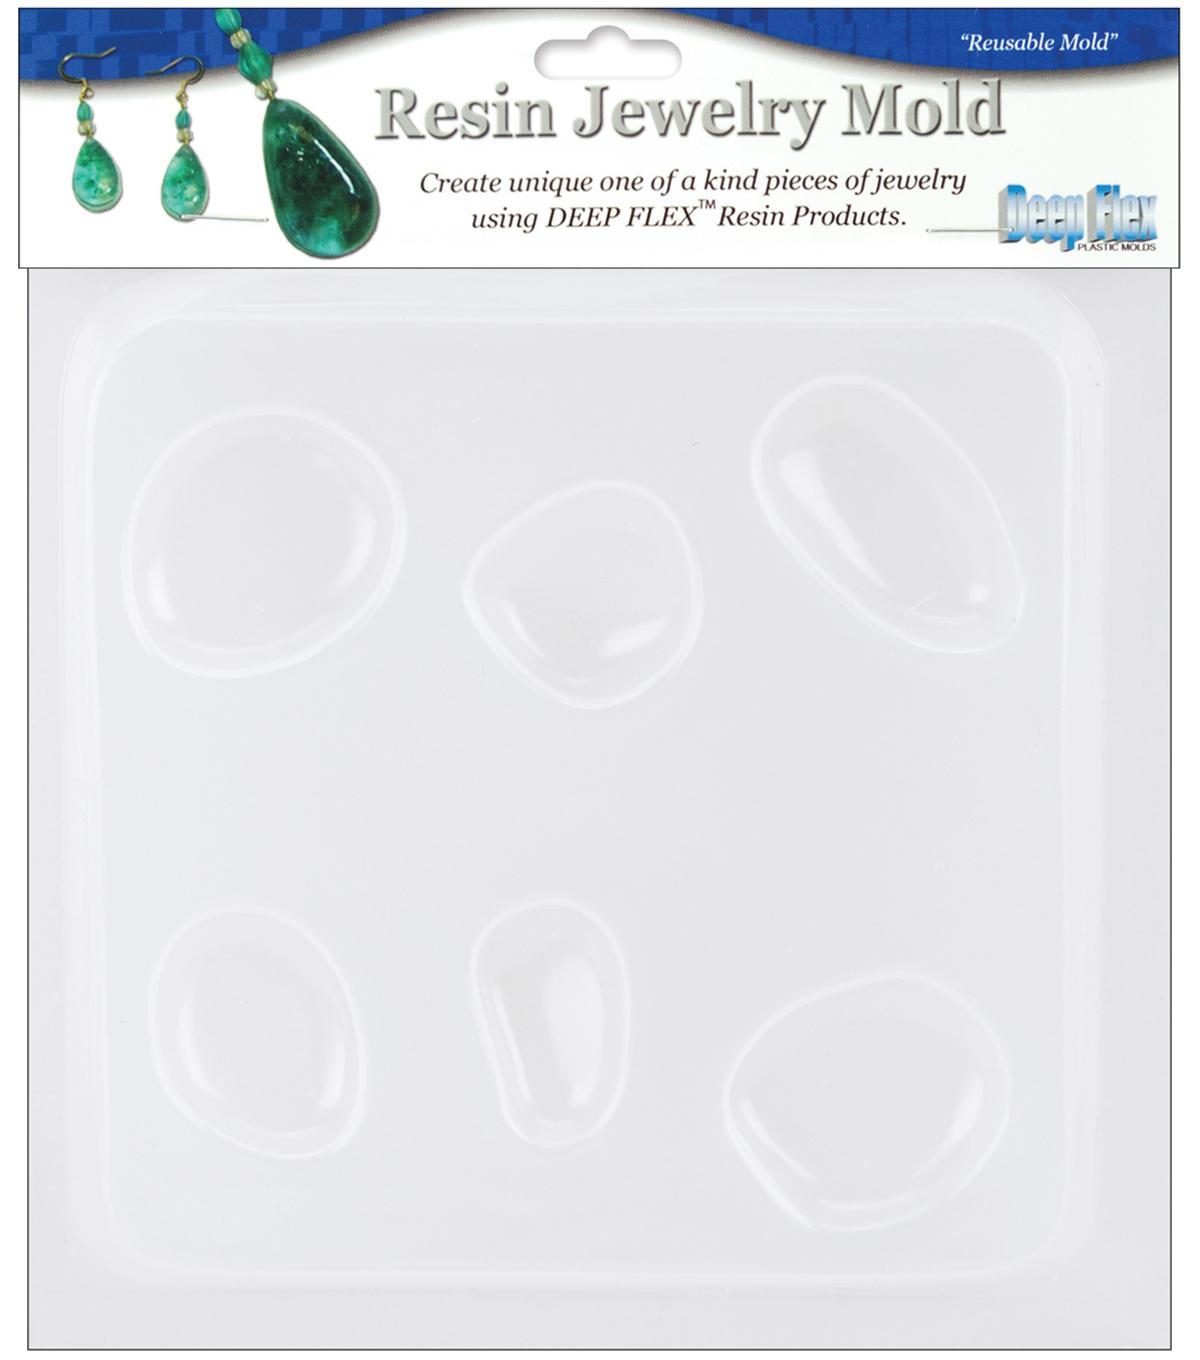 Yaley Resin Jewelry Reusable Plastic Mold 6-1/2\u0022x7\u0022-Natural Stones5Shps